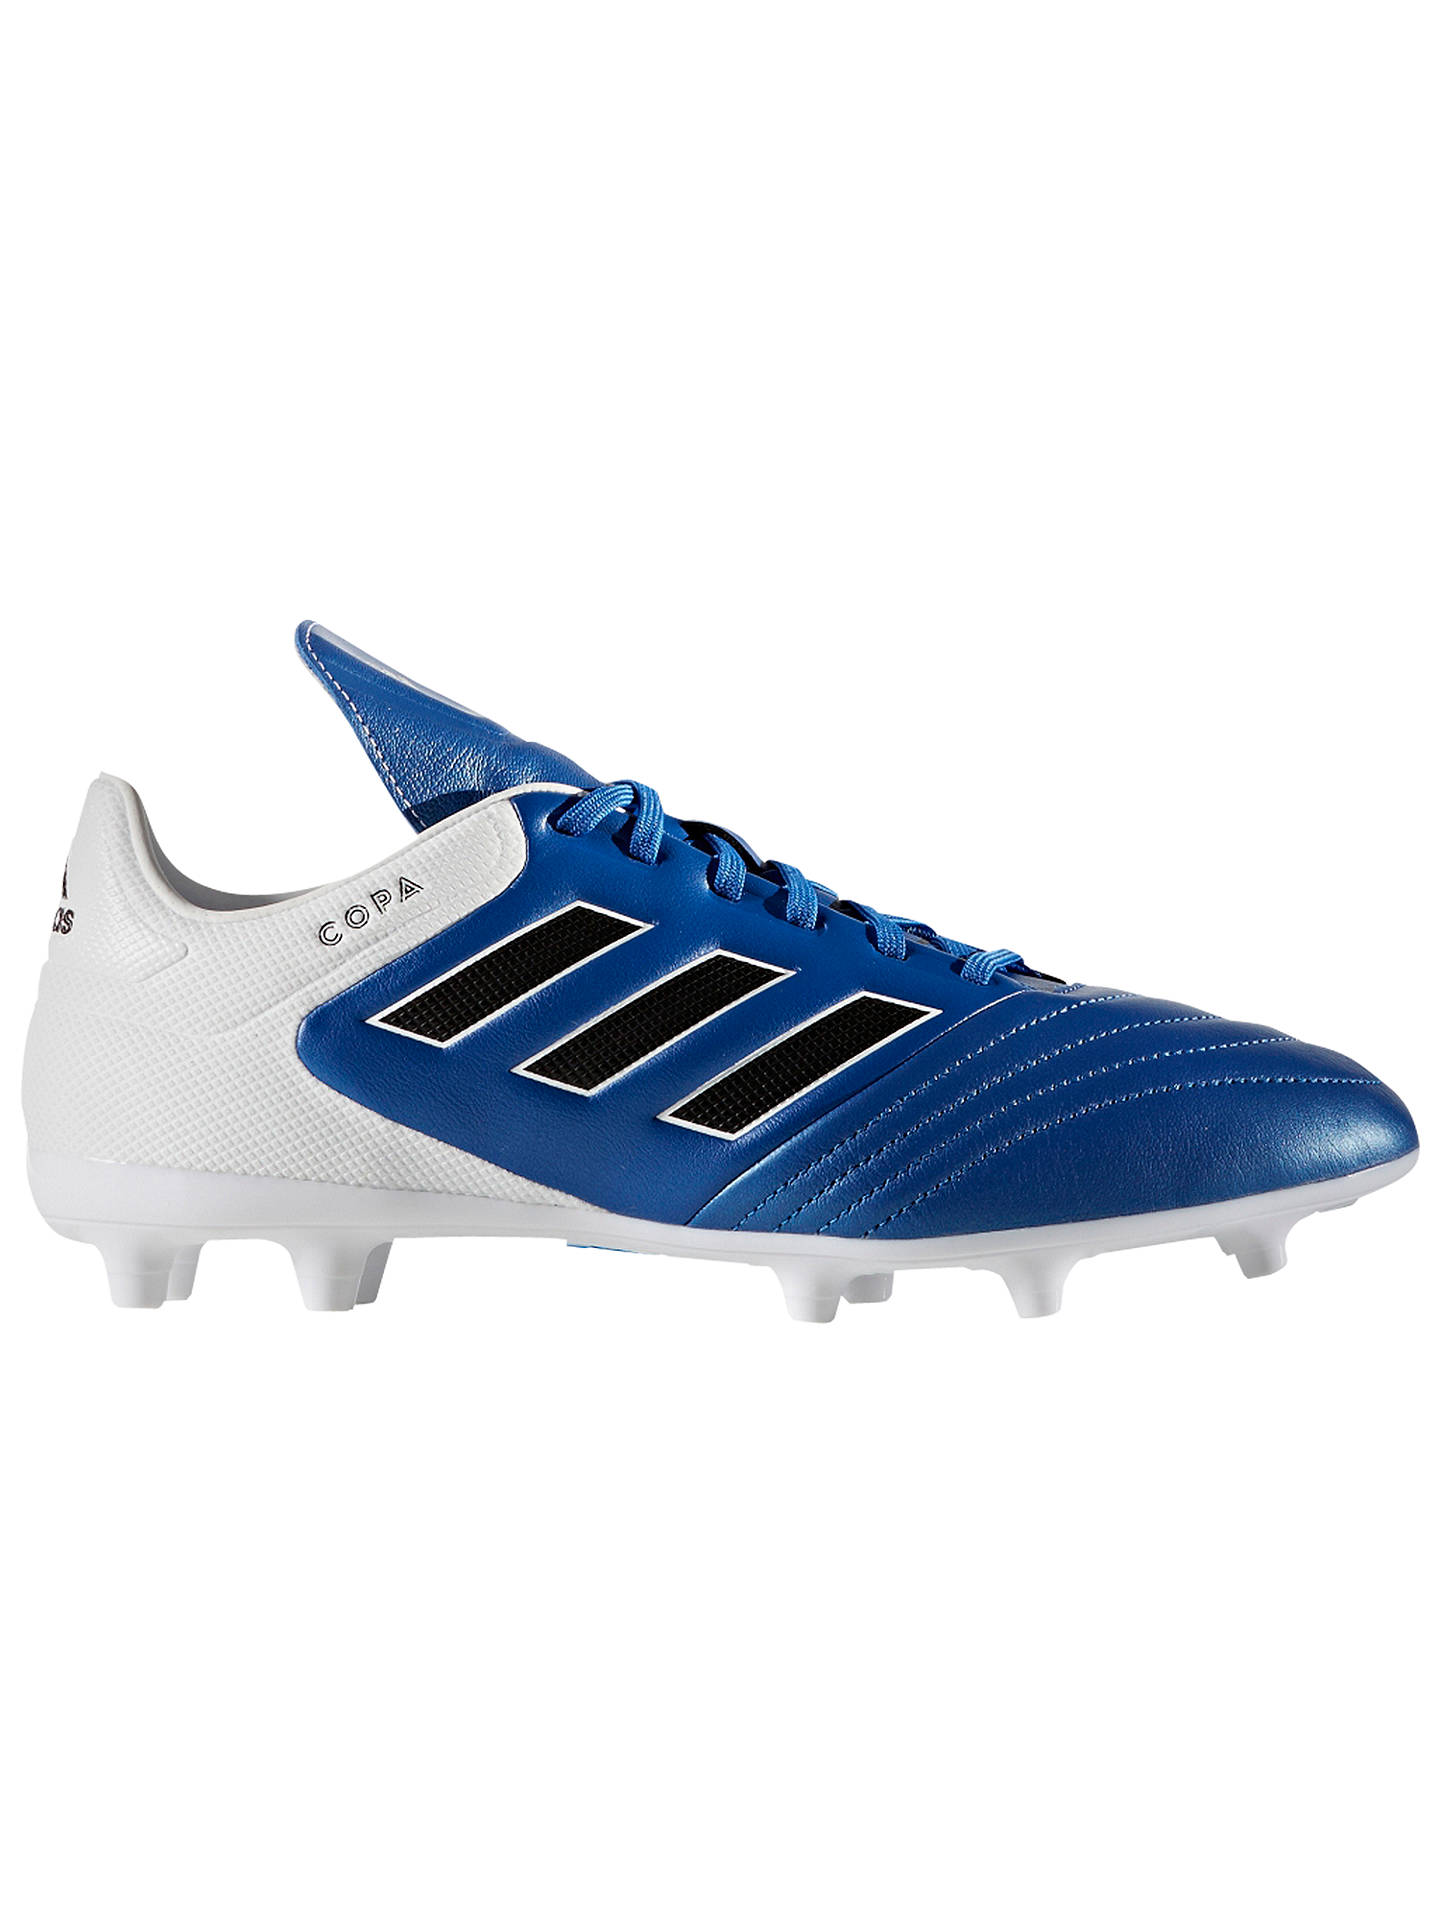 new concept deb1e 48248 BuyAdidas Copa 17.3 FG Mens Football Boots, BlueWhite, 7 Online at  johnlewis ...